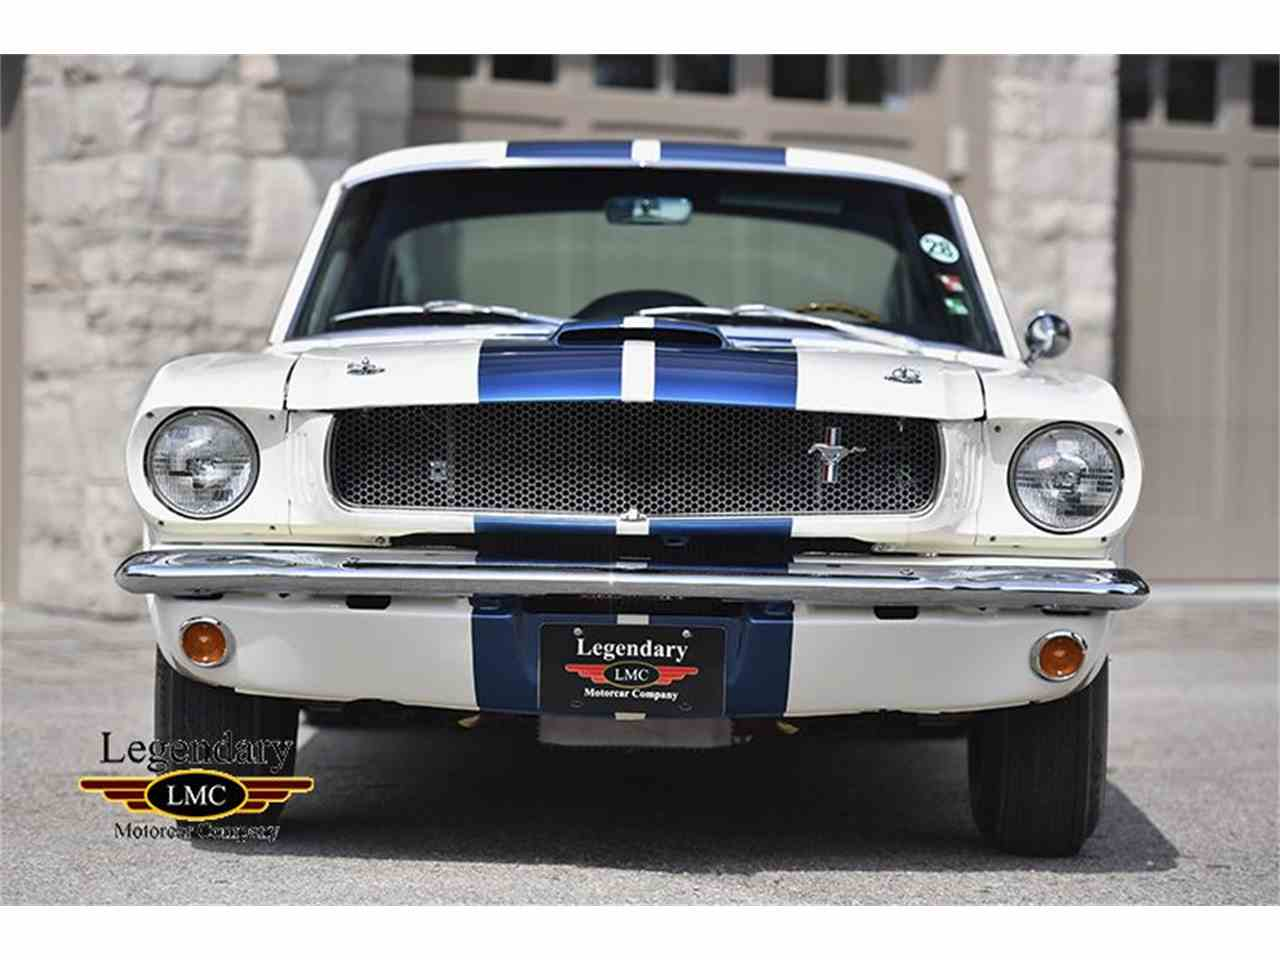 65 mustang for sale ontario - Photo 7